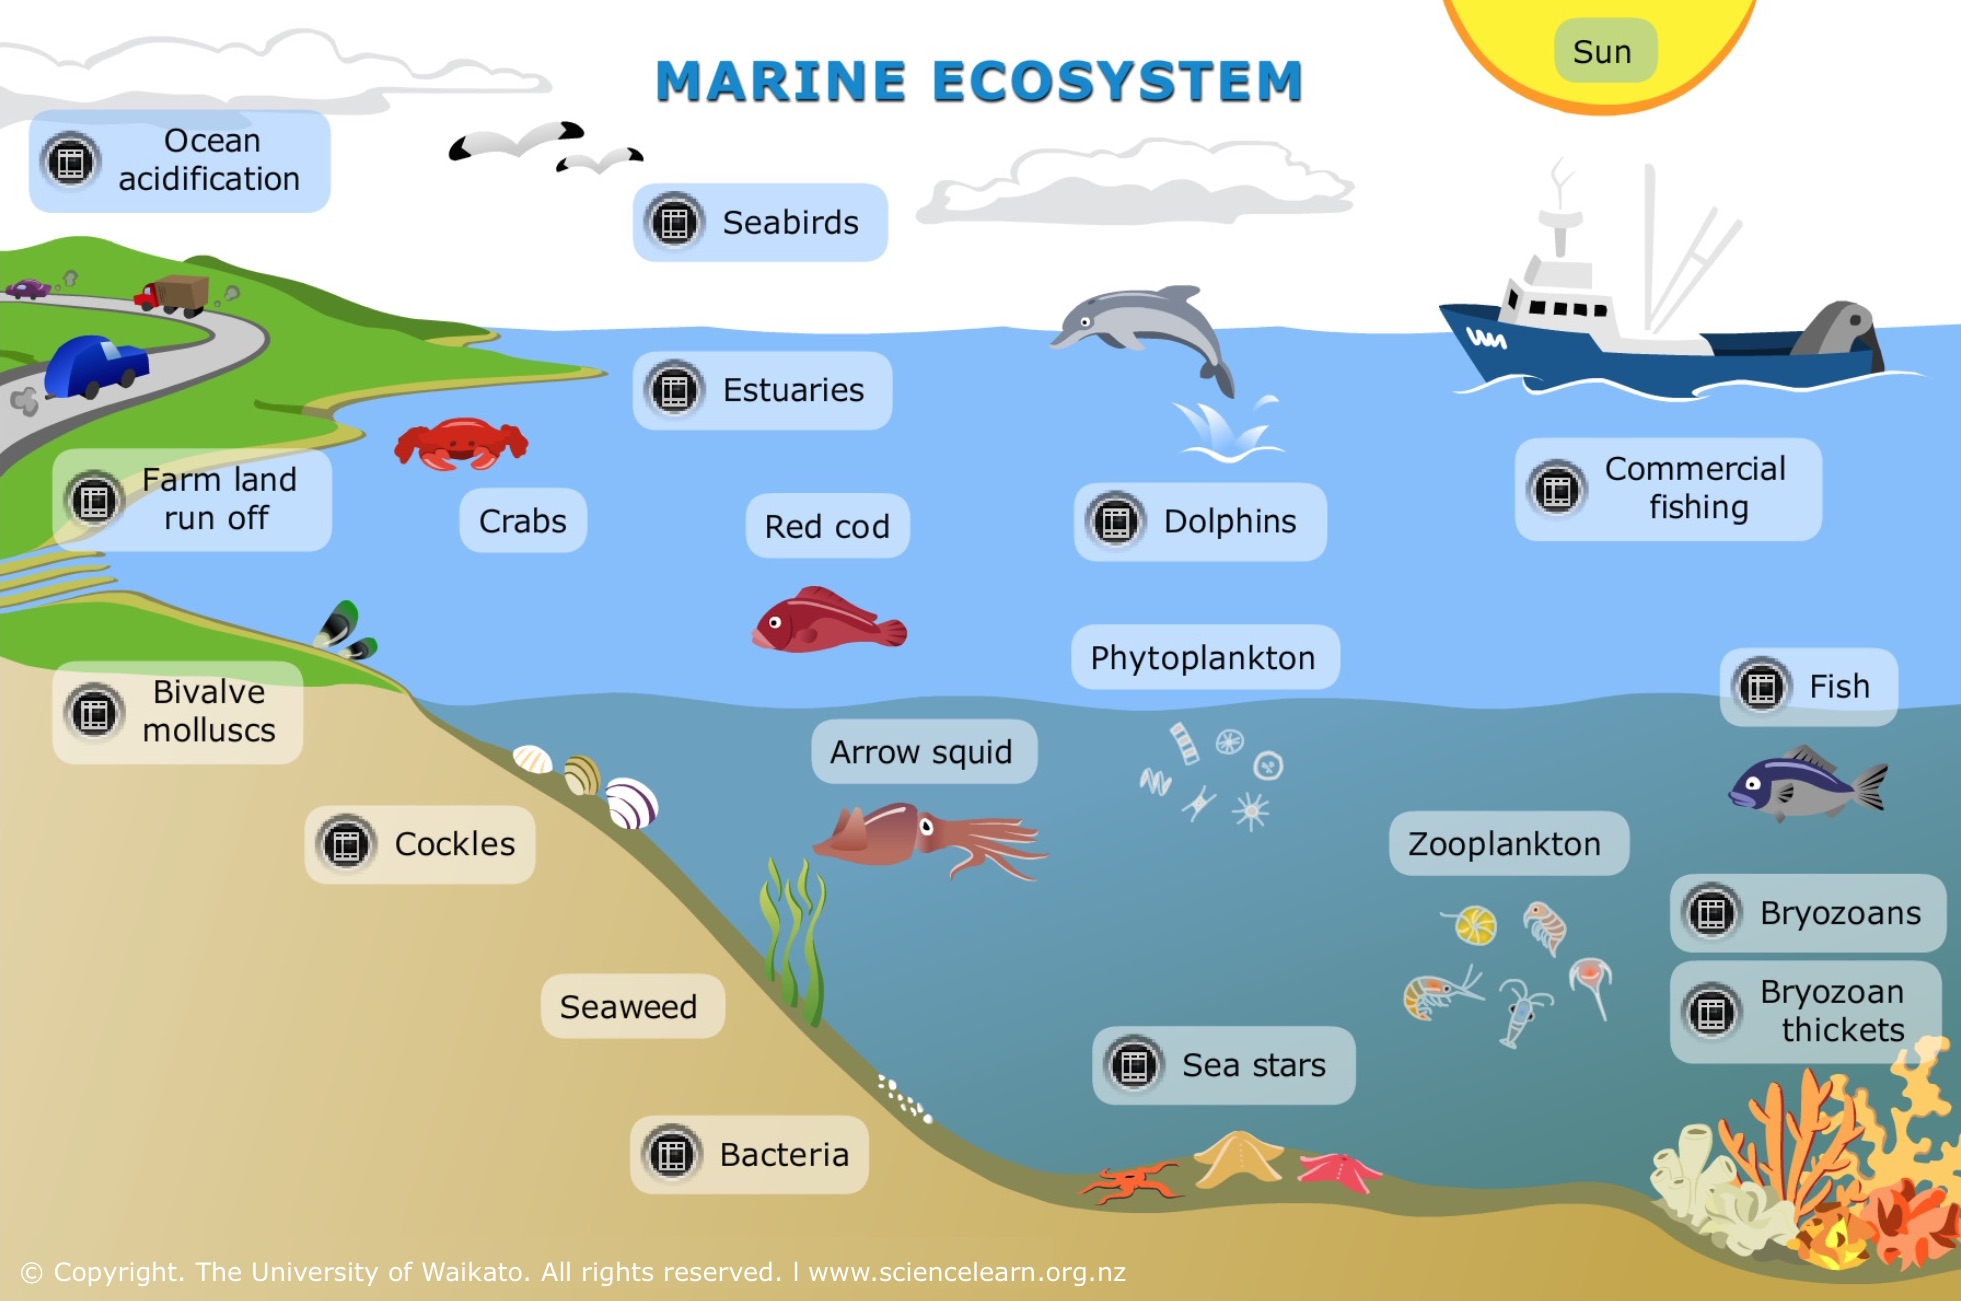 marine ecosystem science learning hub ocean trenches and volcanoes transcript ocean acidification